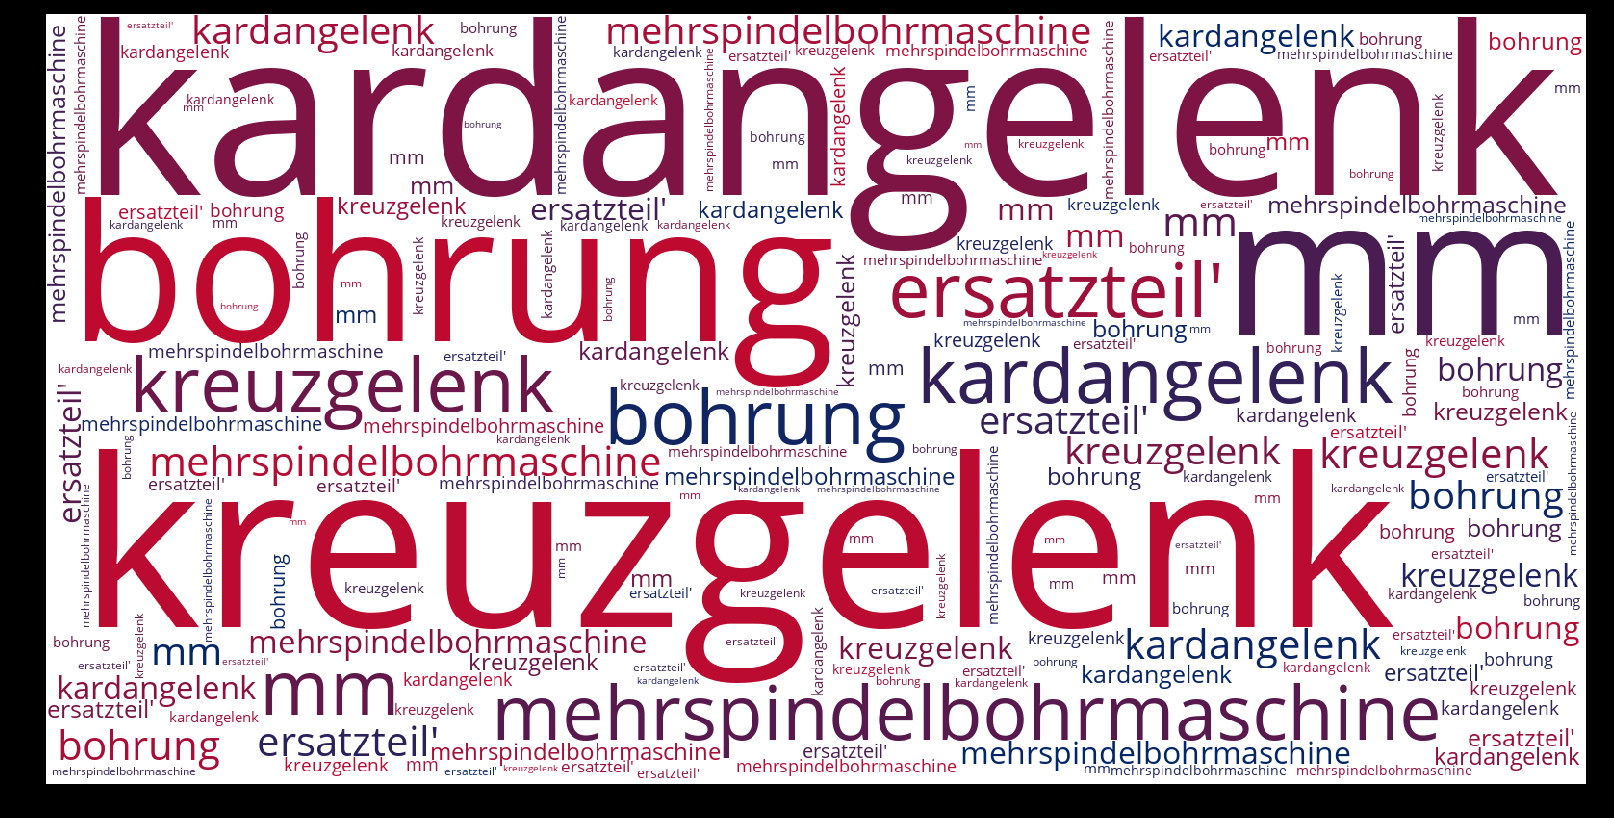 Mehrspindelbohrmaschine-wordcloud